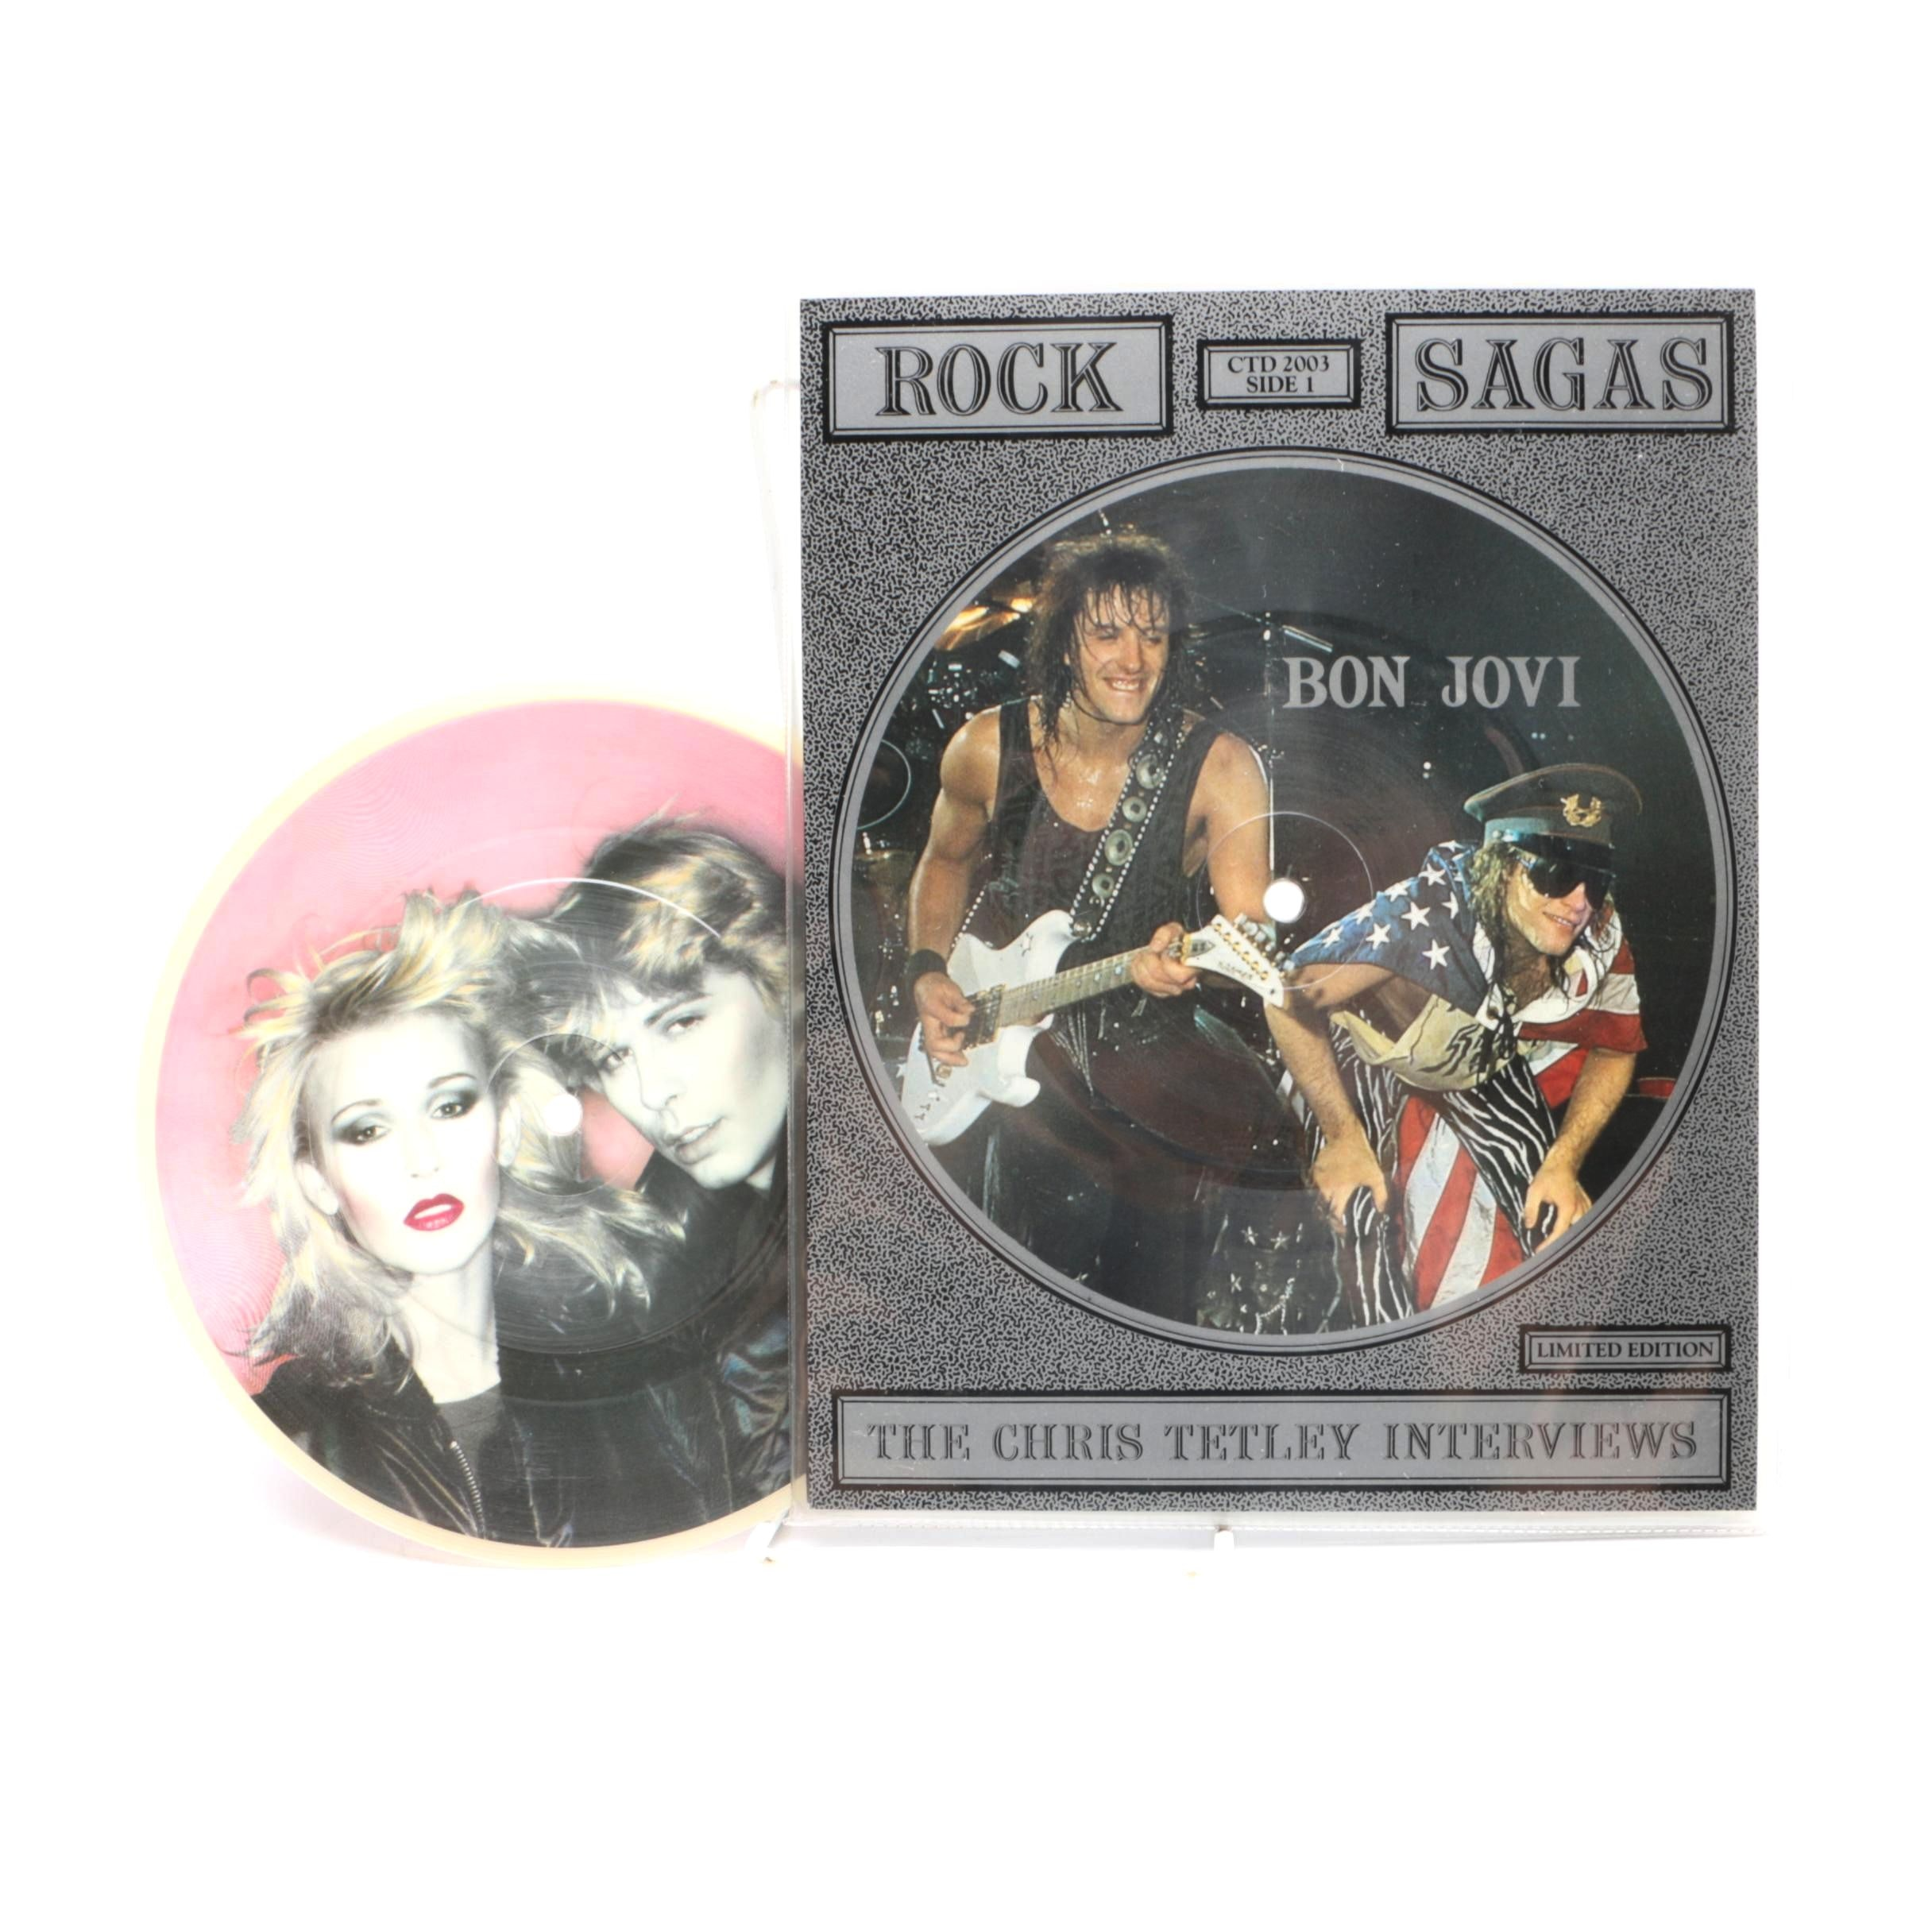 1980s Bon Jovi and Dollar Picture Discs